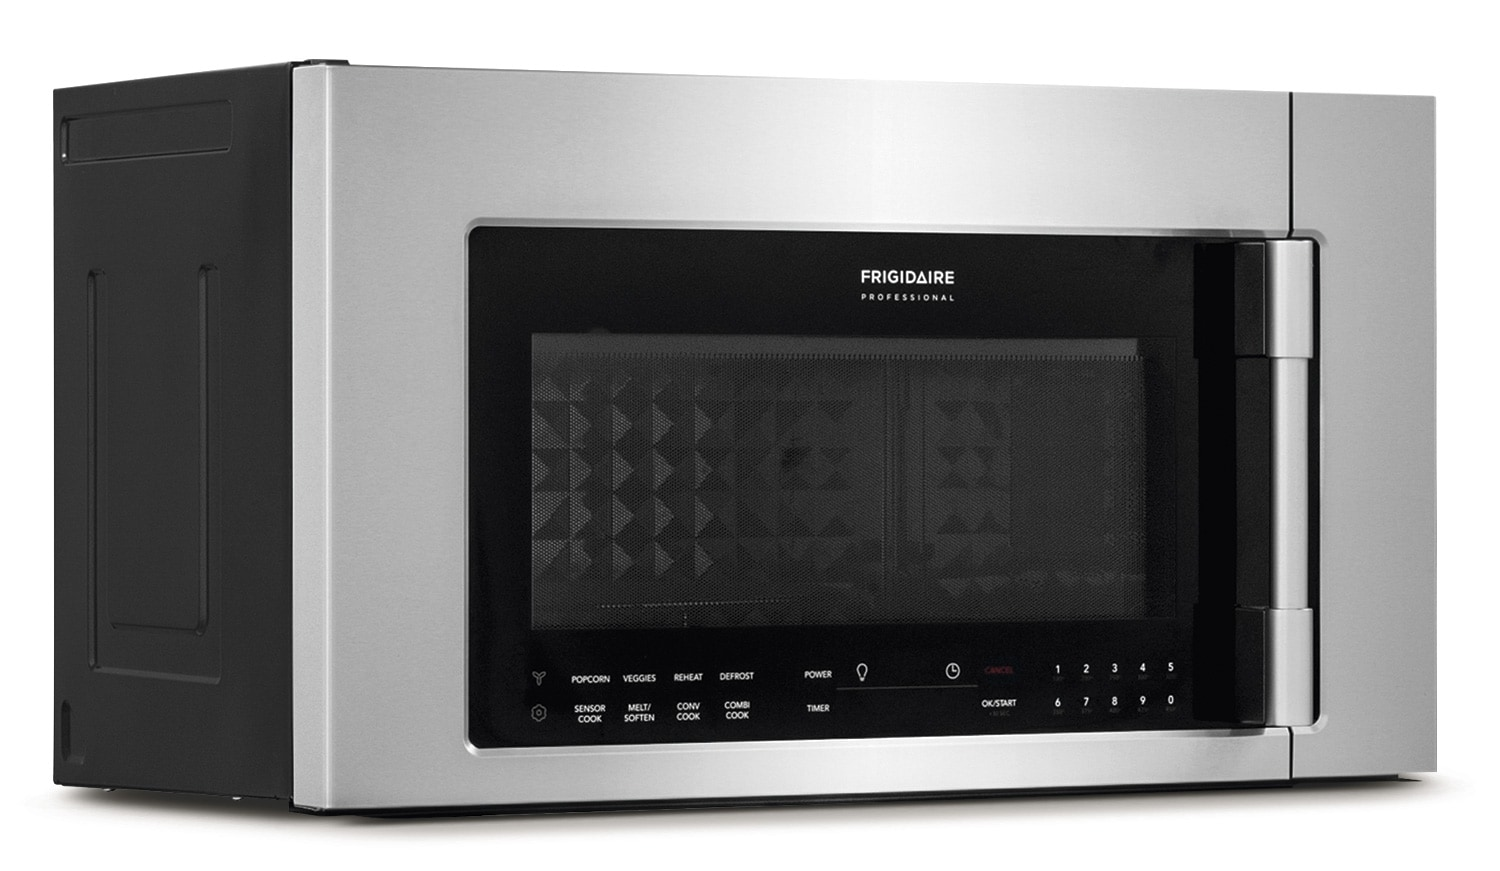 Cooking Products - Frigidaire Professional Stainless Steel Over-the-Range Microwave (1.8 Cu. Ft.) - CPBM3077RF